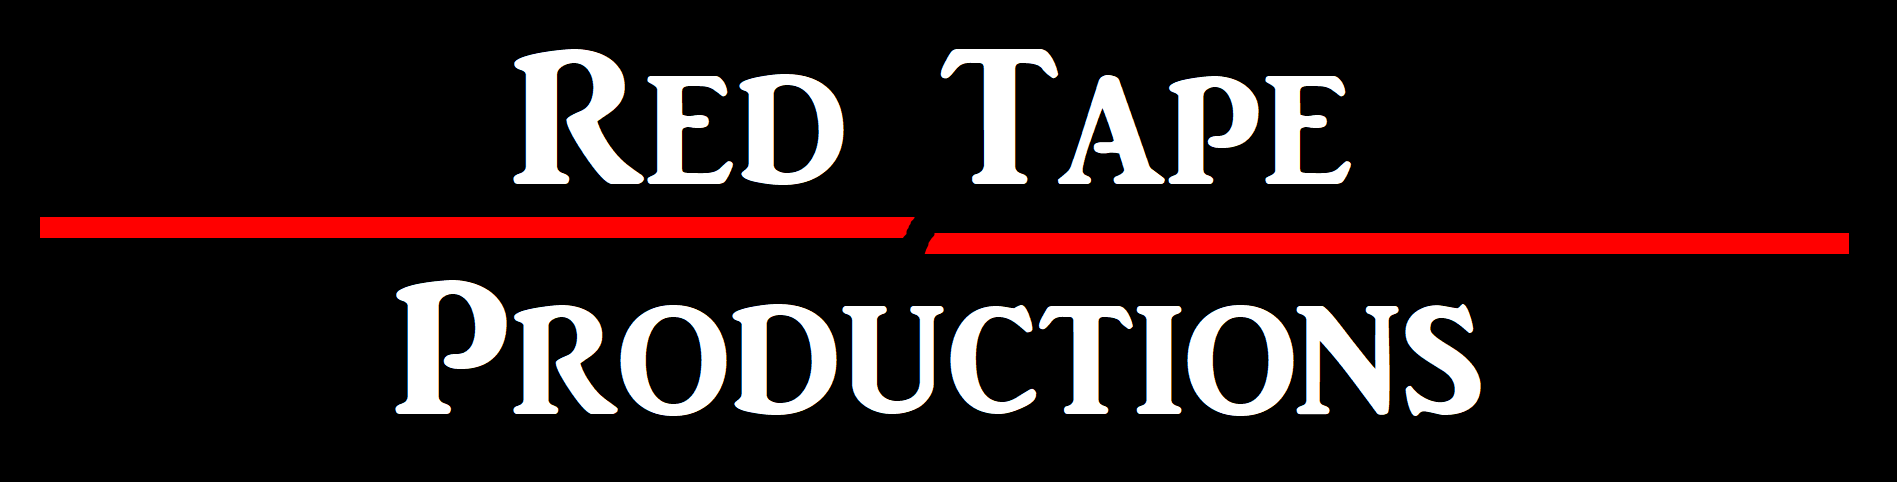 Red Tape Productions